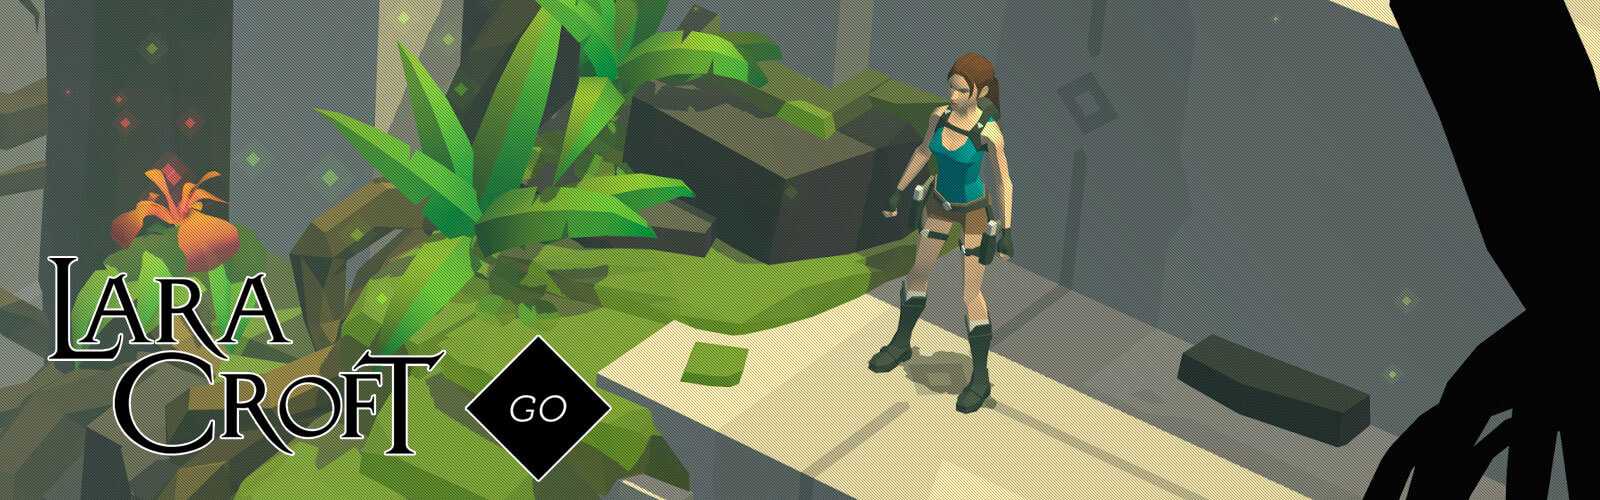 Análise - Lara Croft GO (PS Vita) Cover